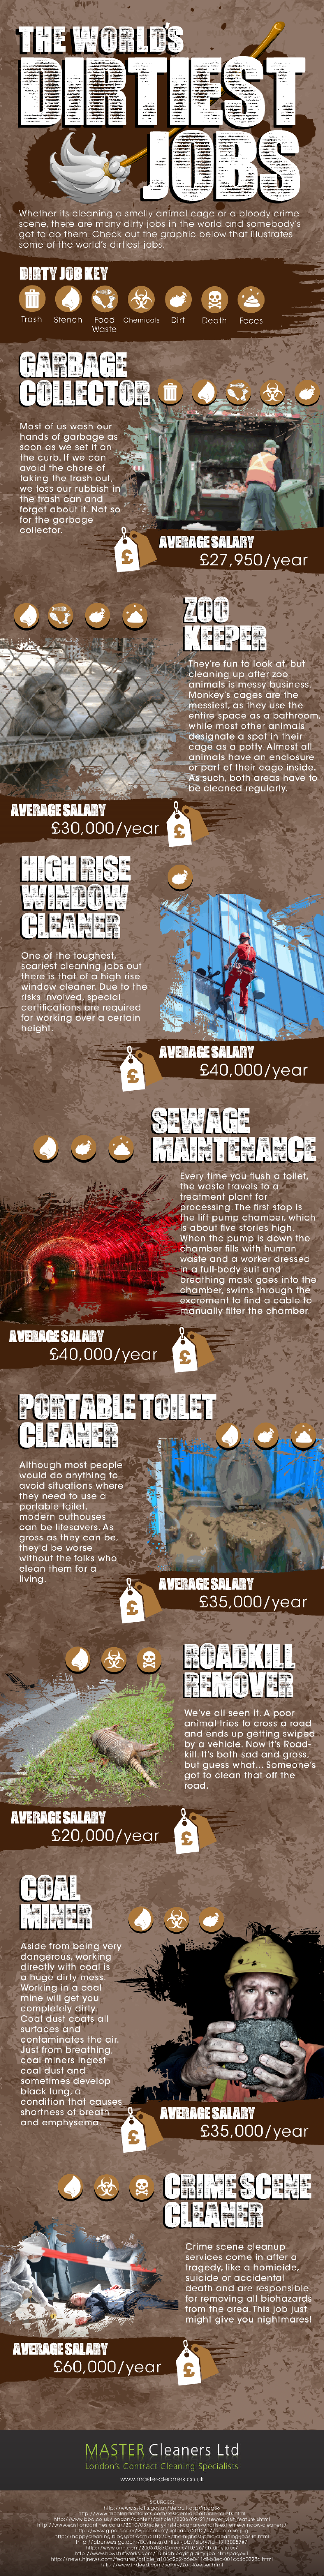 The World's Dirtiest Jobs Infographic